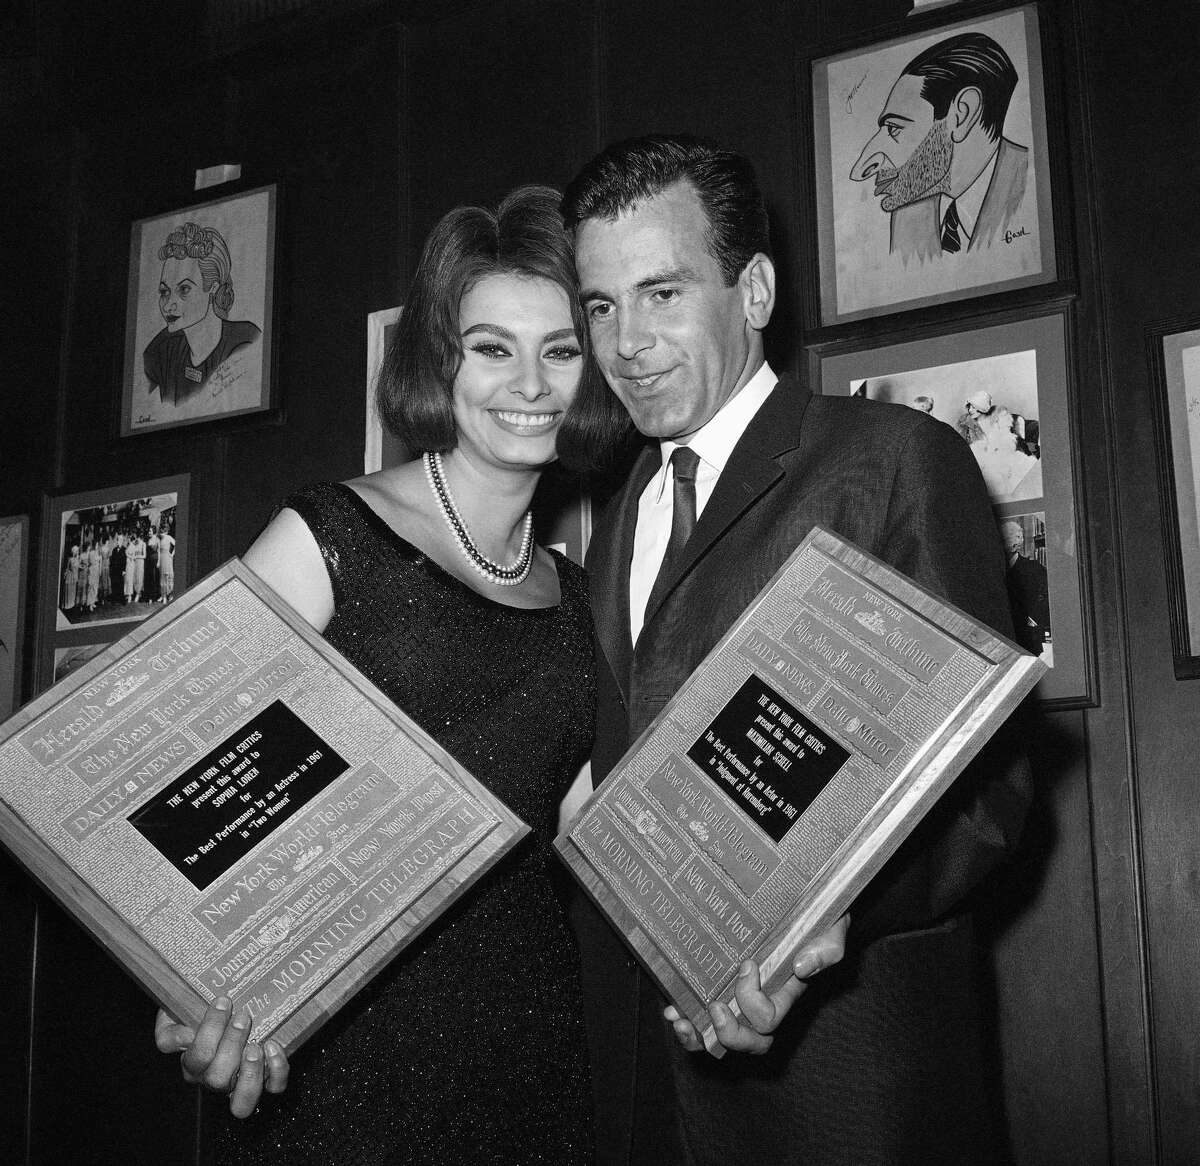 "FILE - In a Jan. 20, 1962 file photo, Maximilian Schell and Sophia Loren hold awards presented to them in New York by the New York Film Critics Circle. Schell was cited as best actor of 1961 for his role in ""Judgment at Nuremberg."" Loren was acclaimed best actress of 1961 for her part in the movie ""Two Women."""